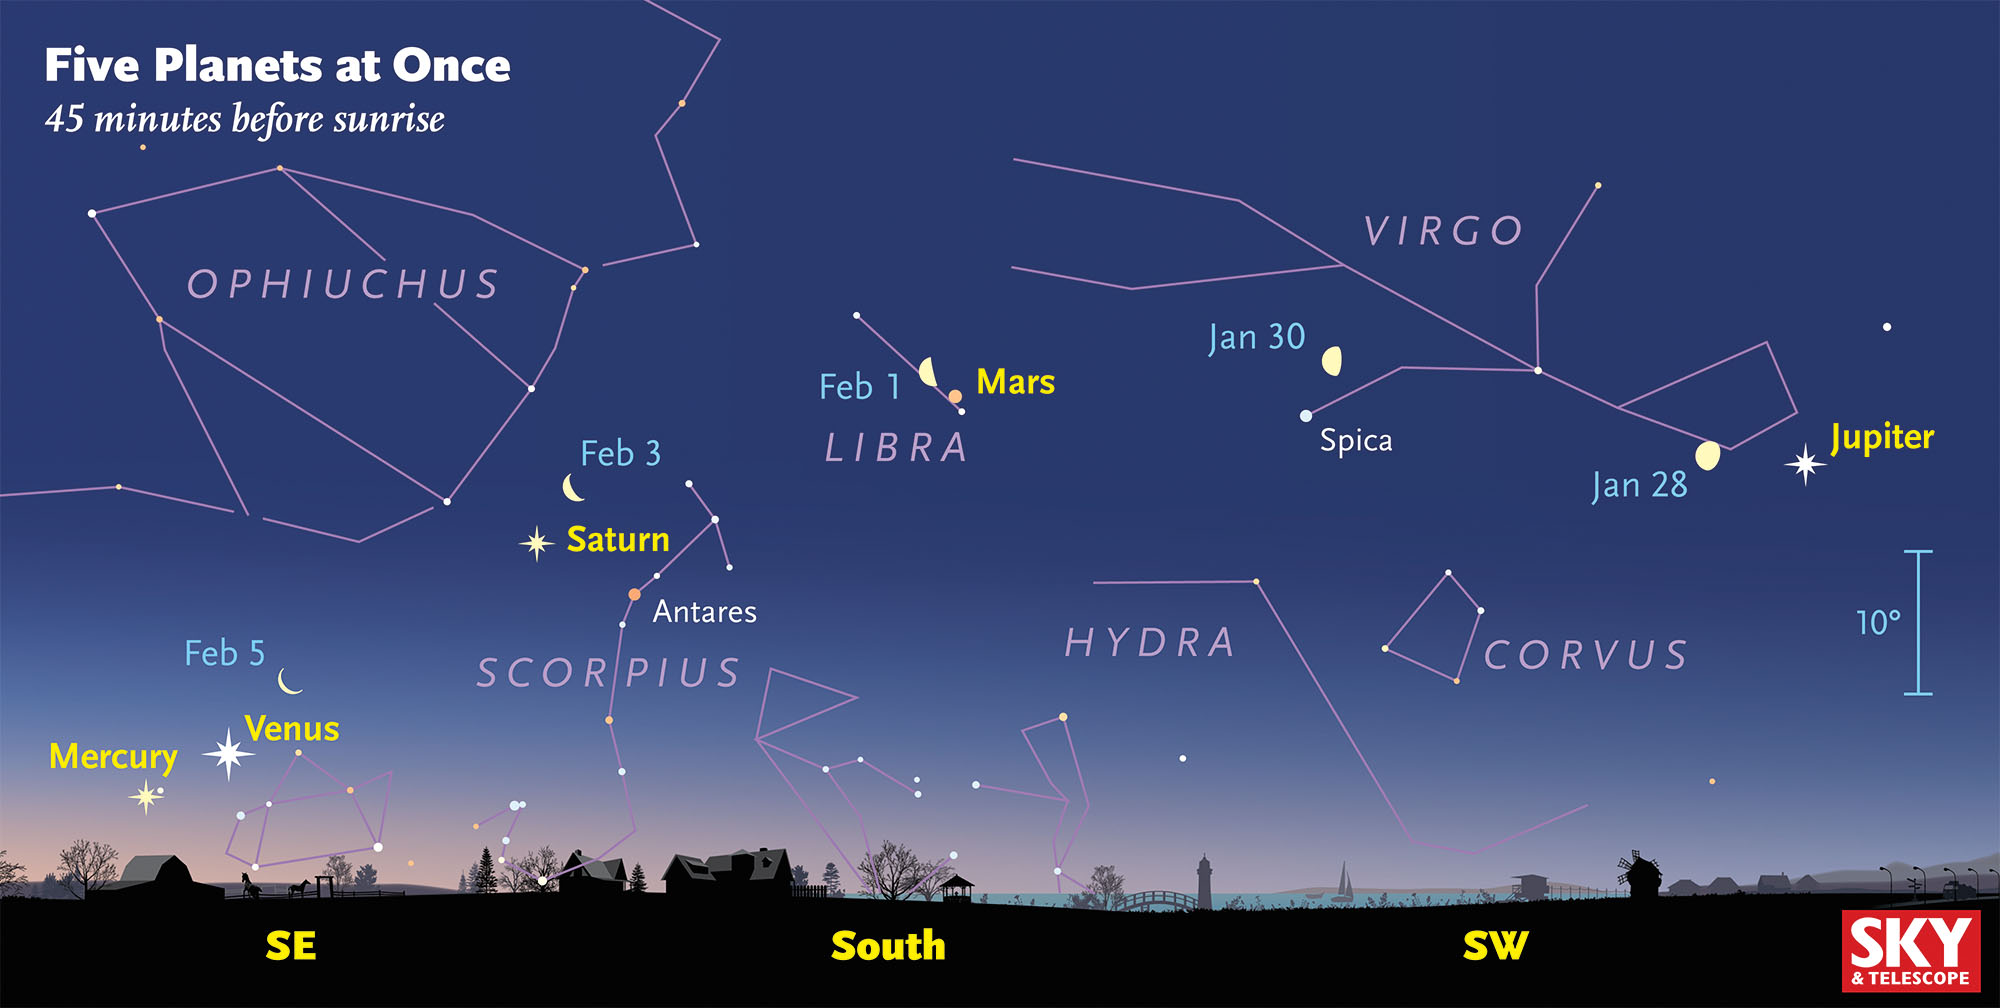 planets and constellations night sky - photo #43